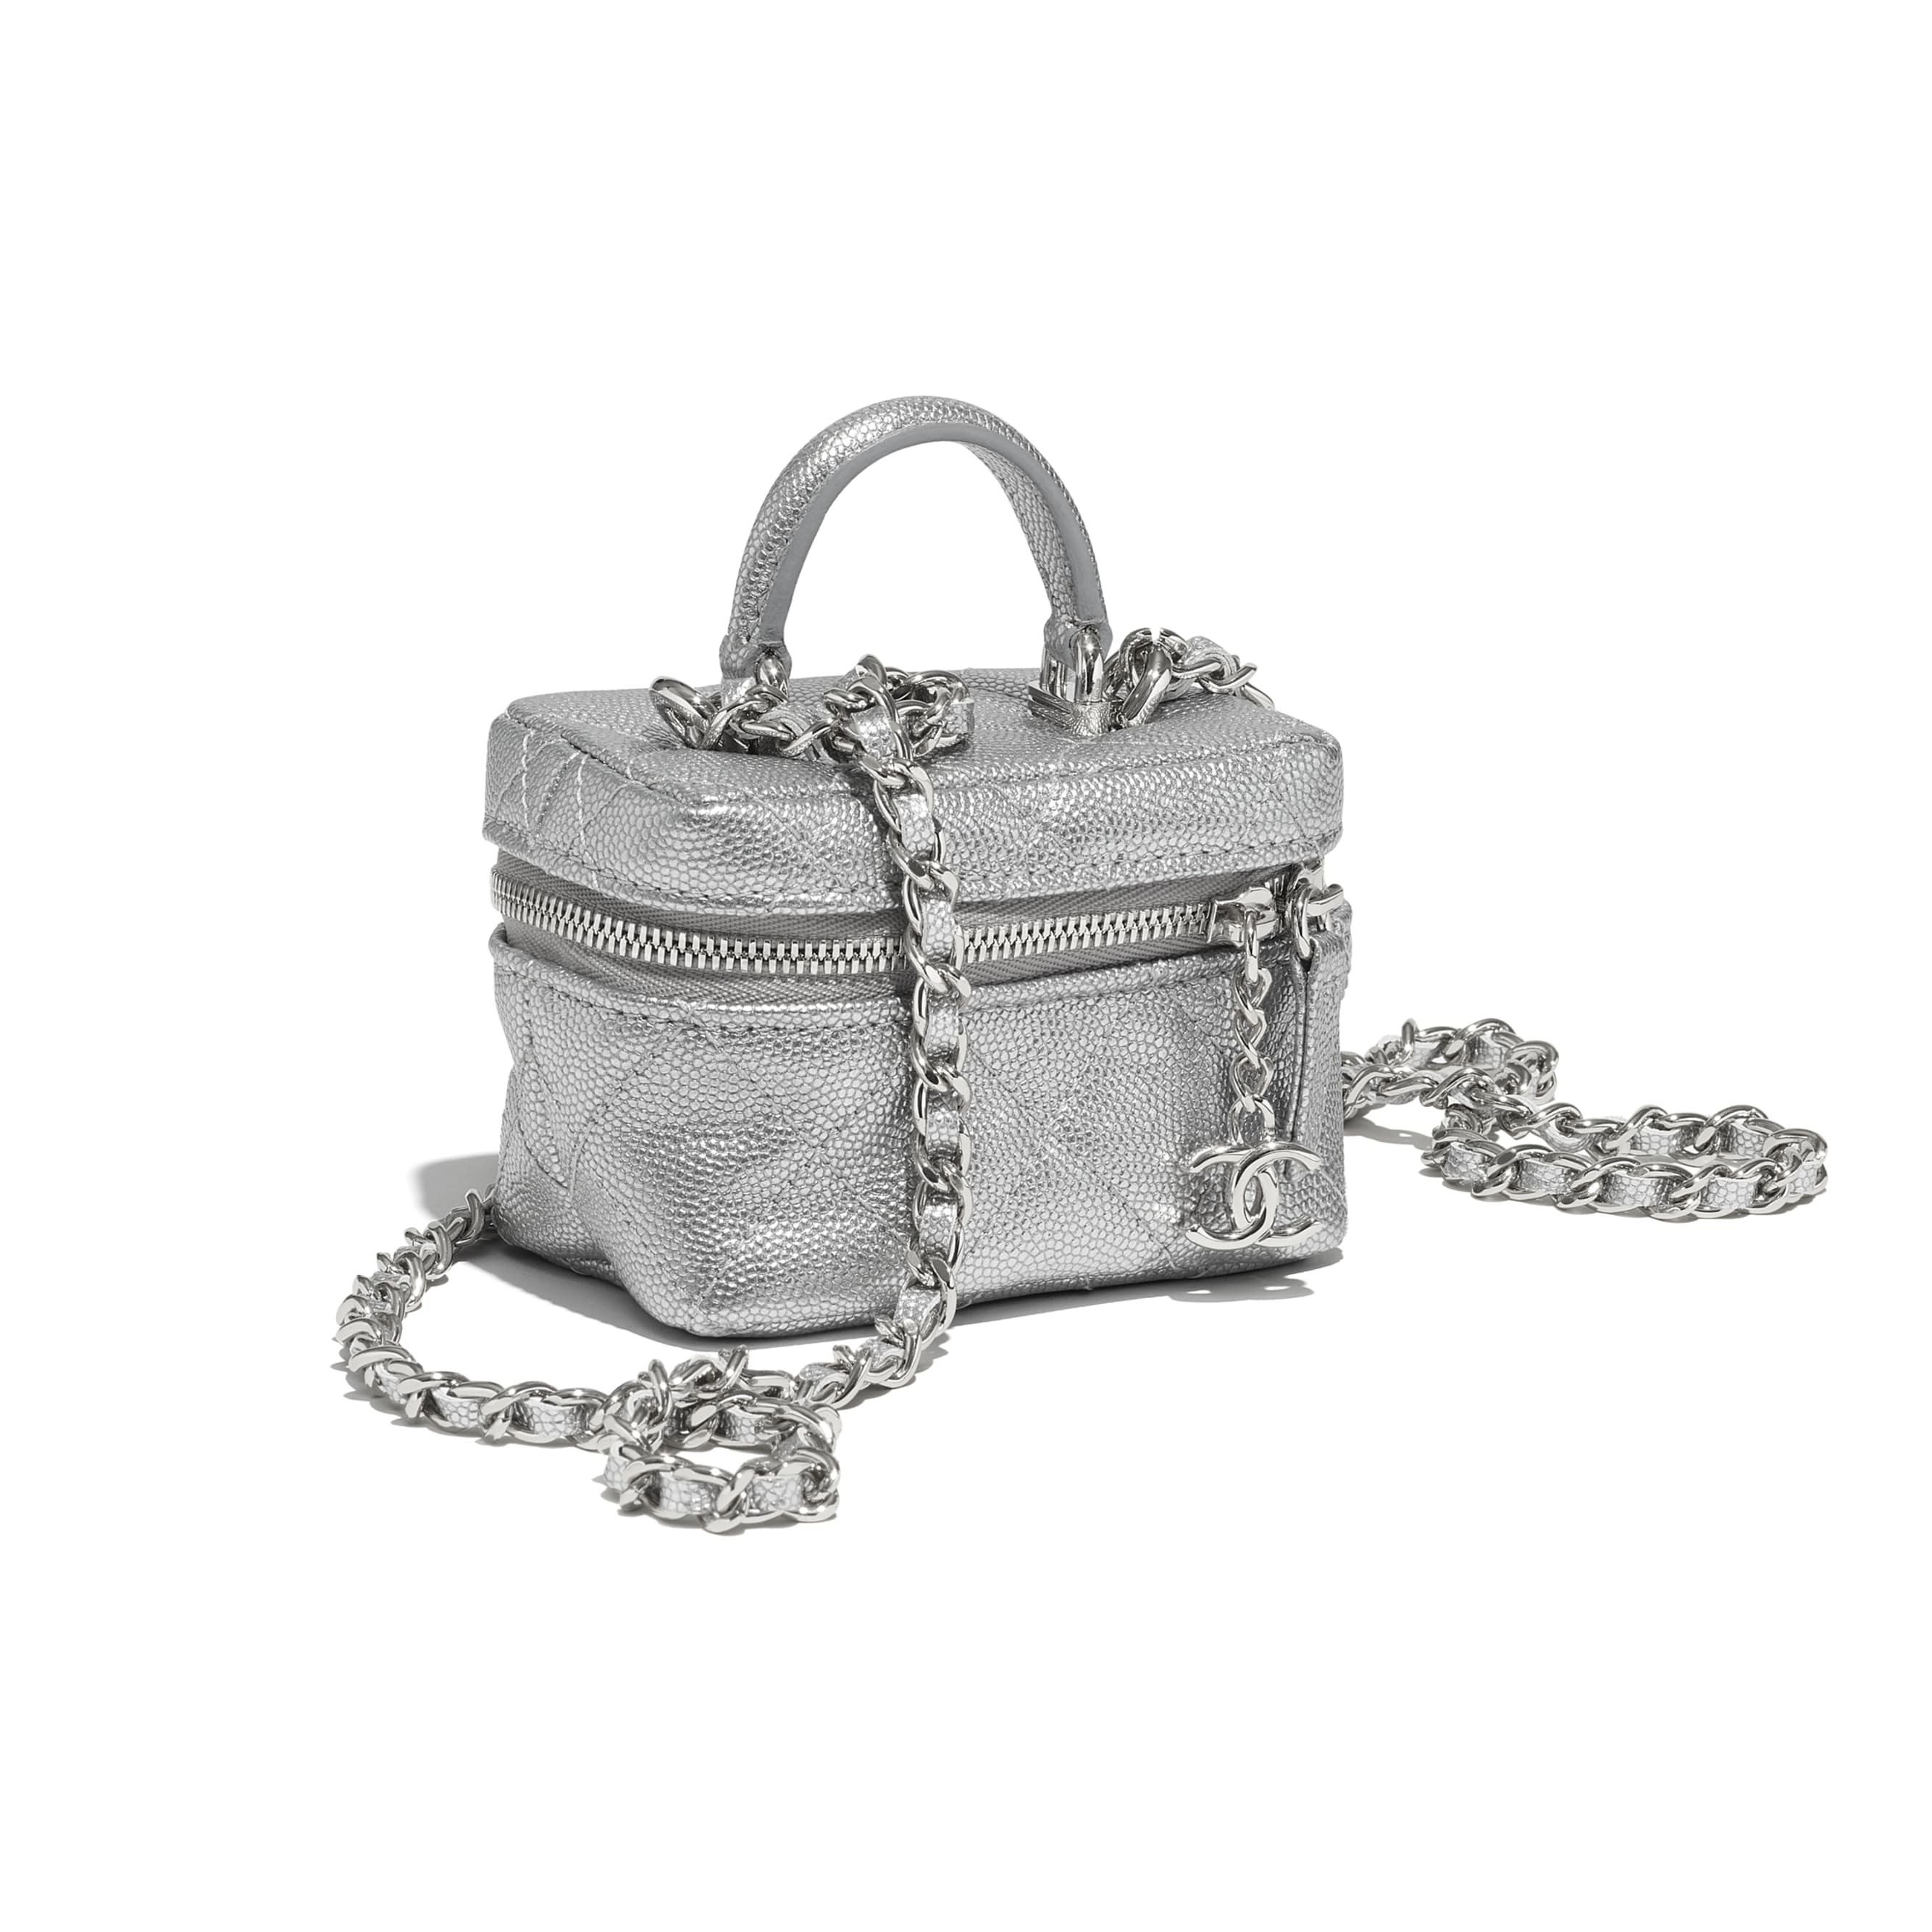 Small Vanity with Chain - Silver - Metallic Grained Calfskin & Silver-Tone Metal - CHANEL - Extra view - see standard sized version